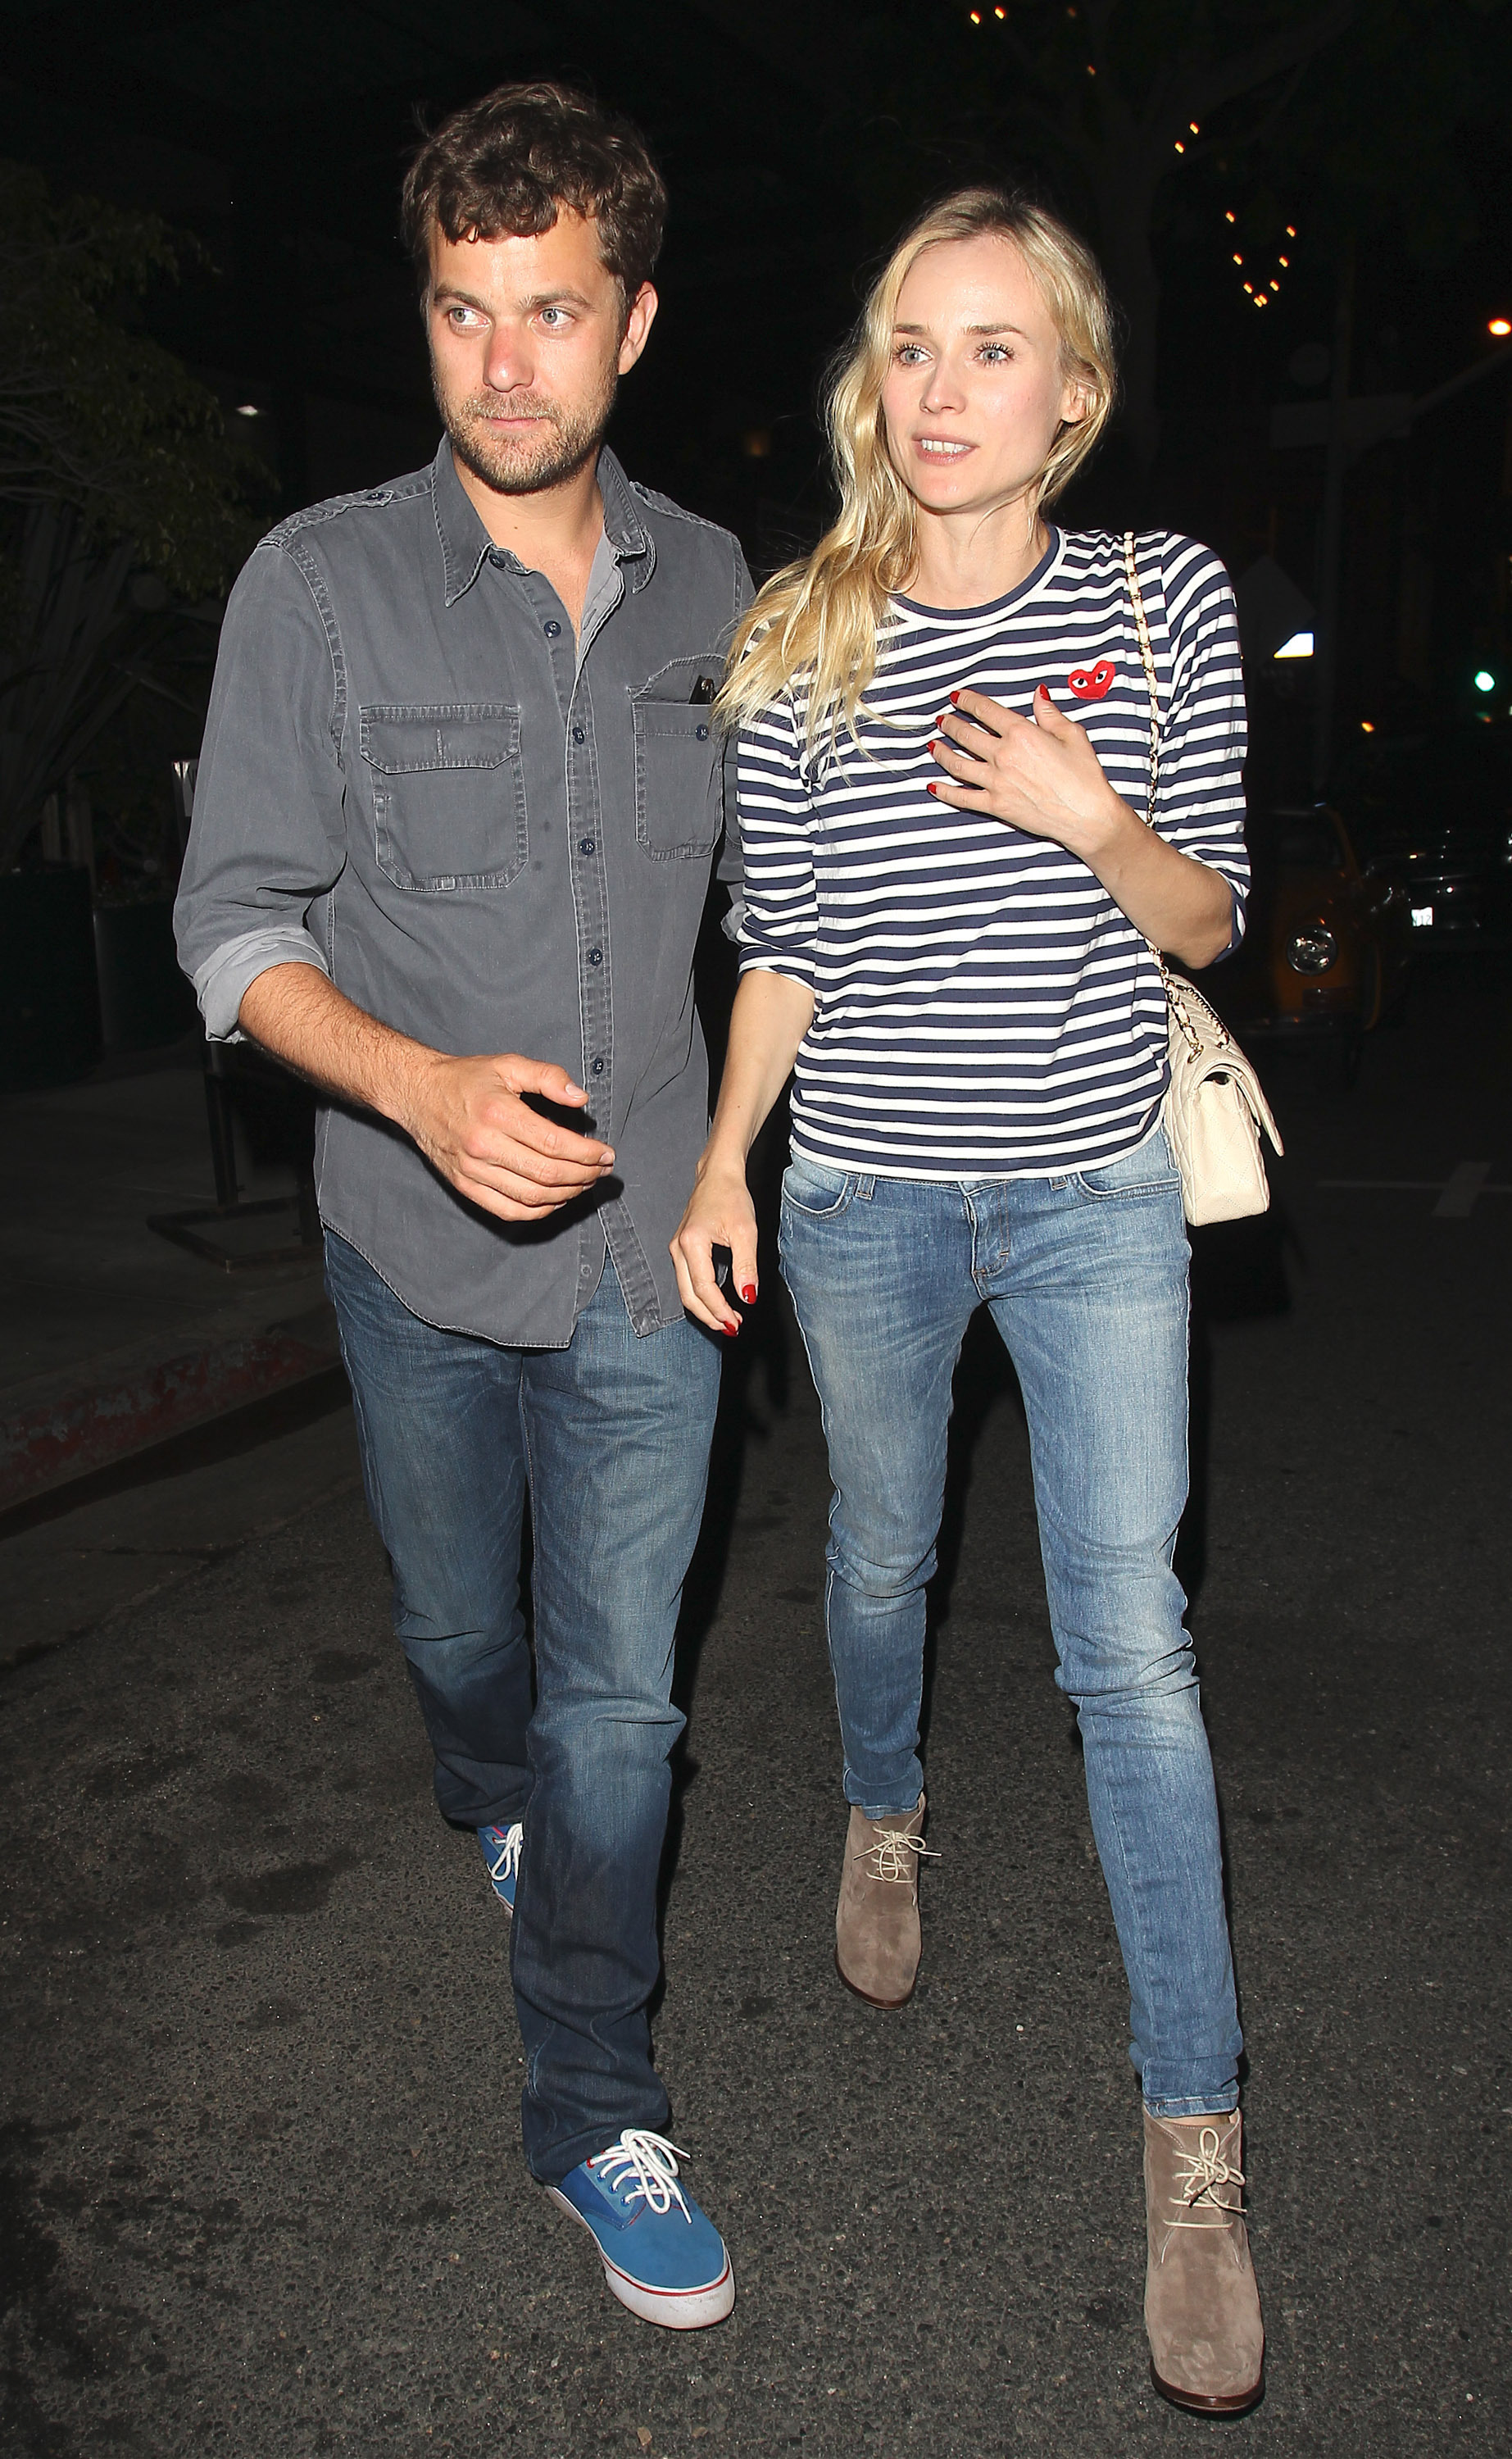 diane kruger and joshua jackson went on a date in la diane kruger and joshua jackson do. Black Bedroom Furniture Sets. Home Design Ideas